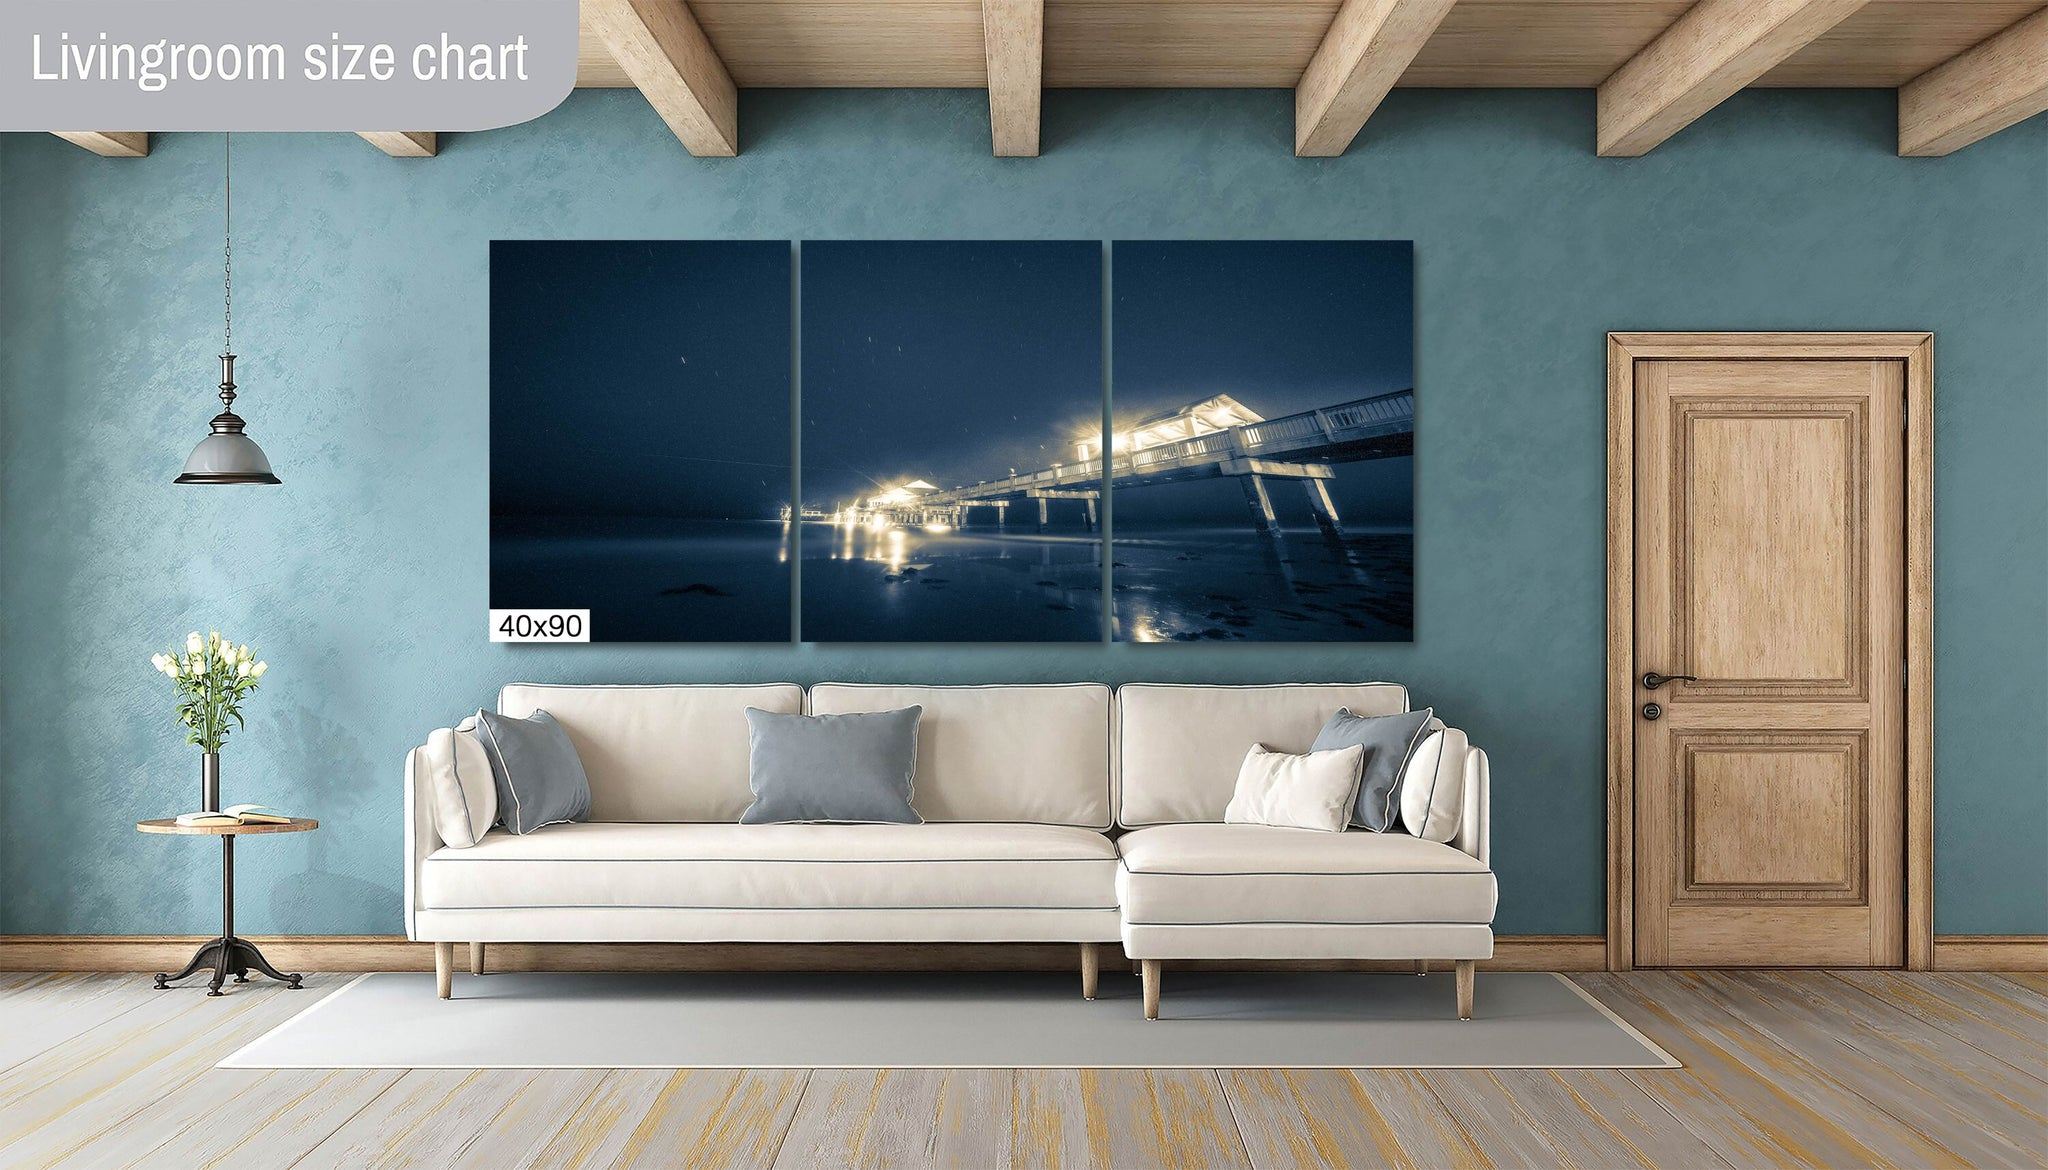 Pier 60 at Midnight Clearwater Beach Florida Canvas Print Metal Art Cityscape Landmark Bedroom Livingroom wall art decor Seascape